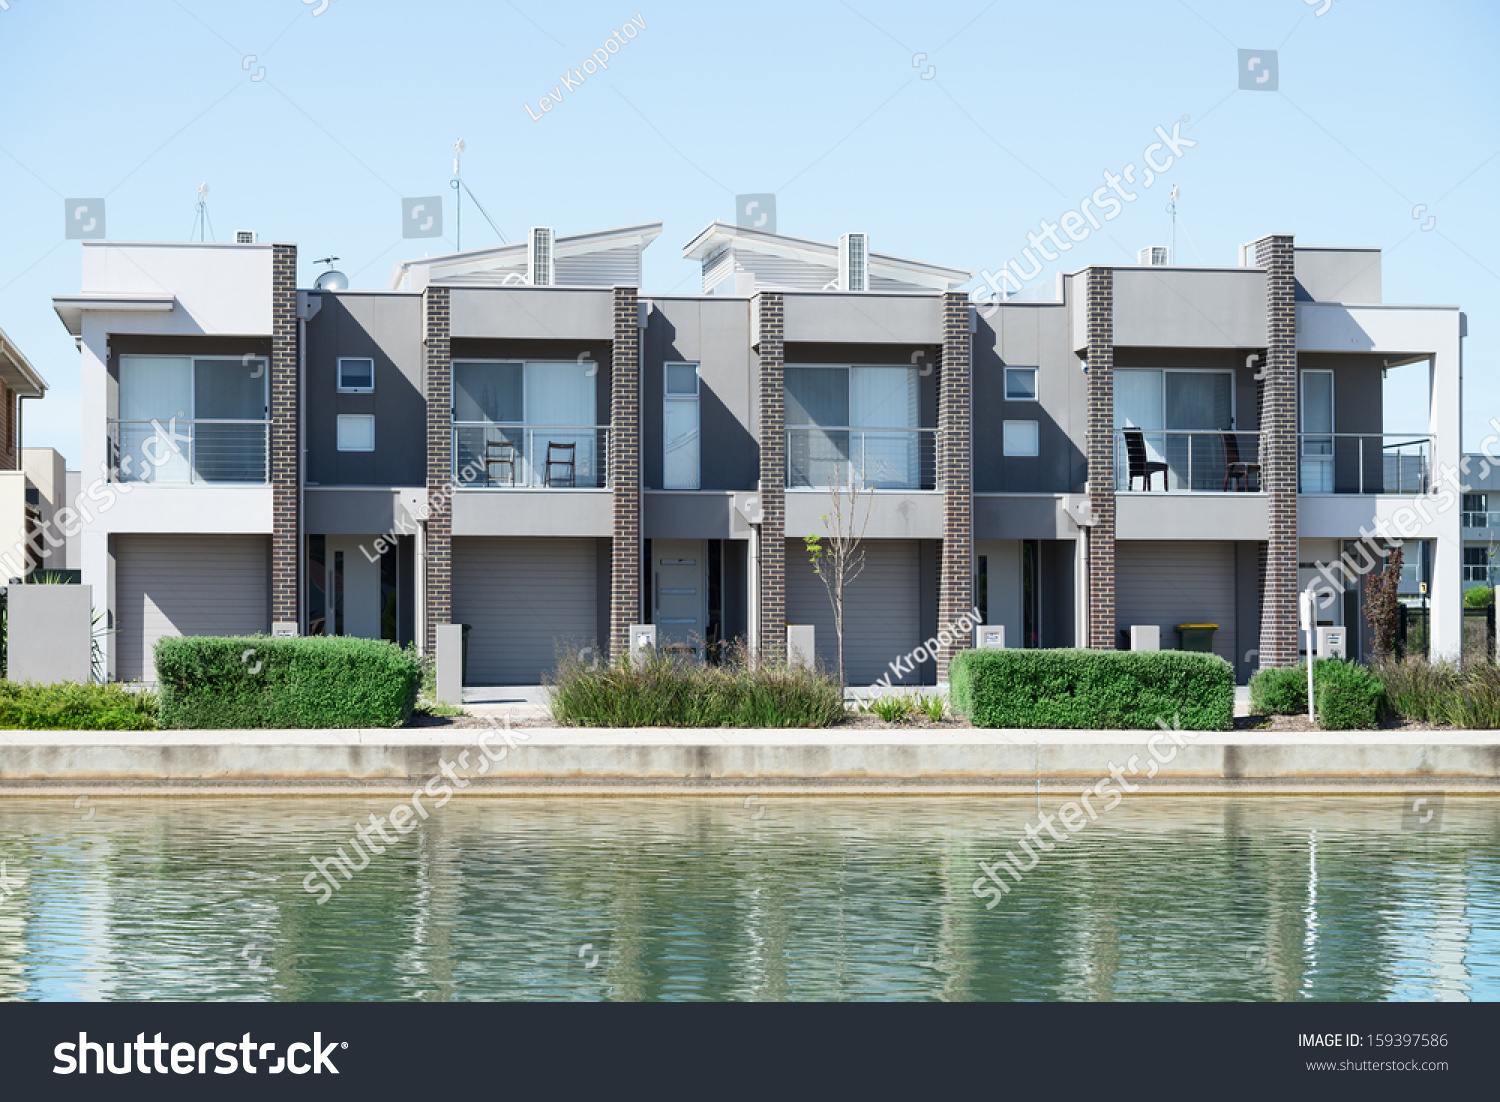 Modern Suburban House - Typical facade of a modern town suburban house near the pond at noon